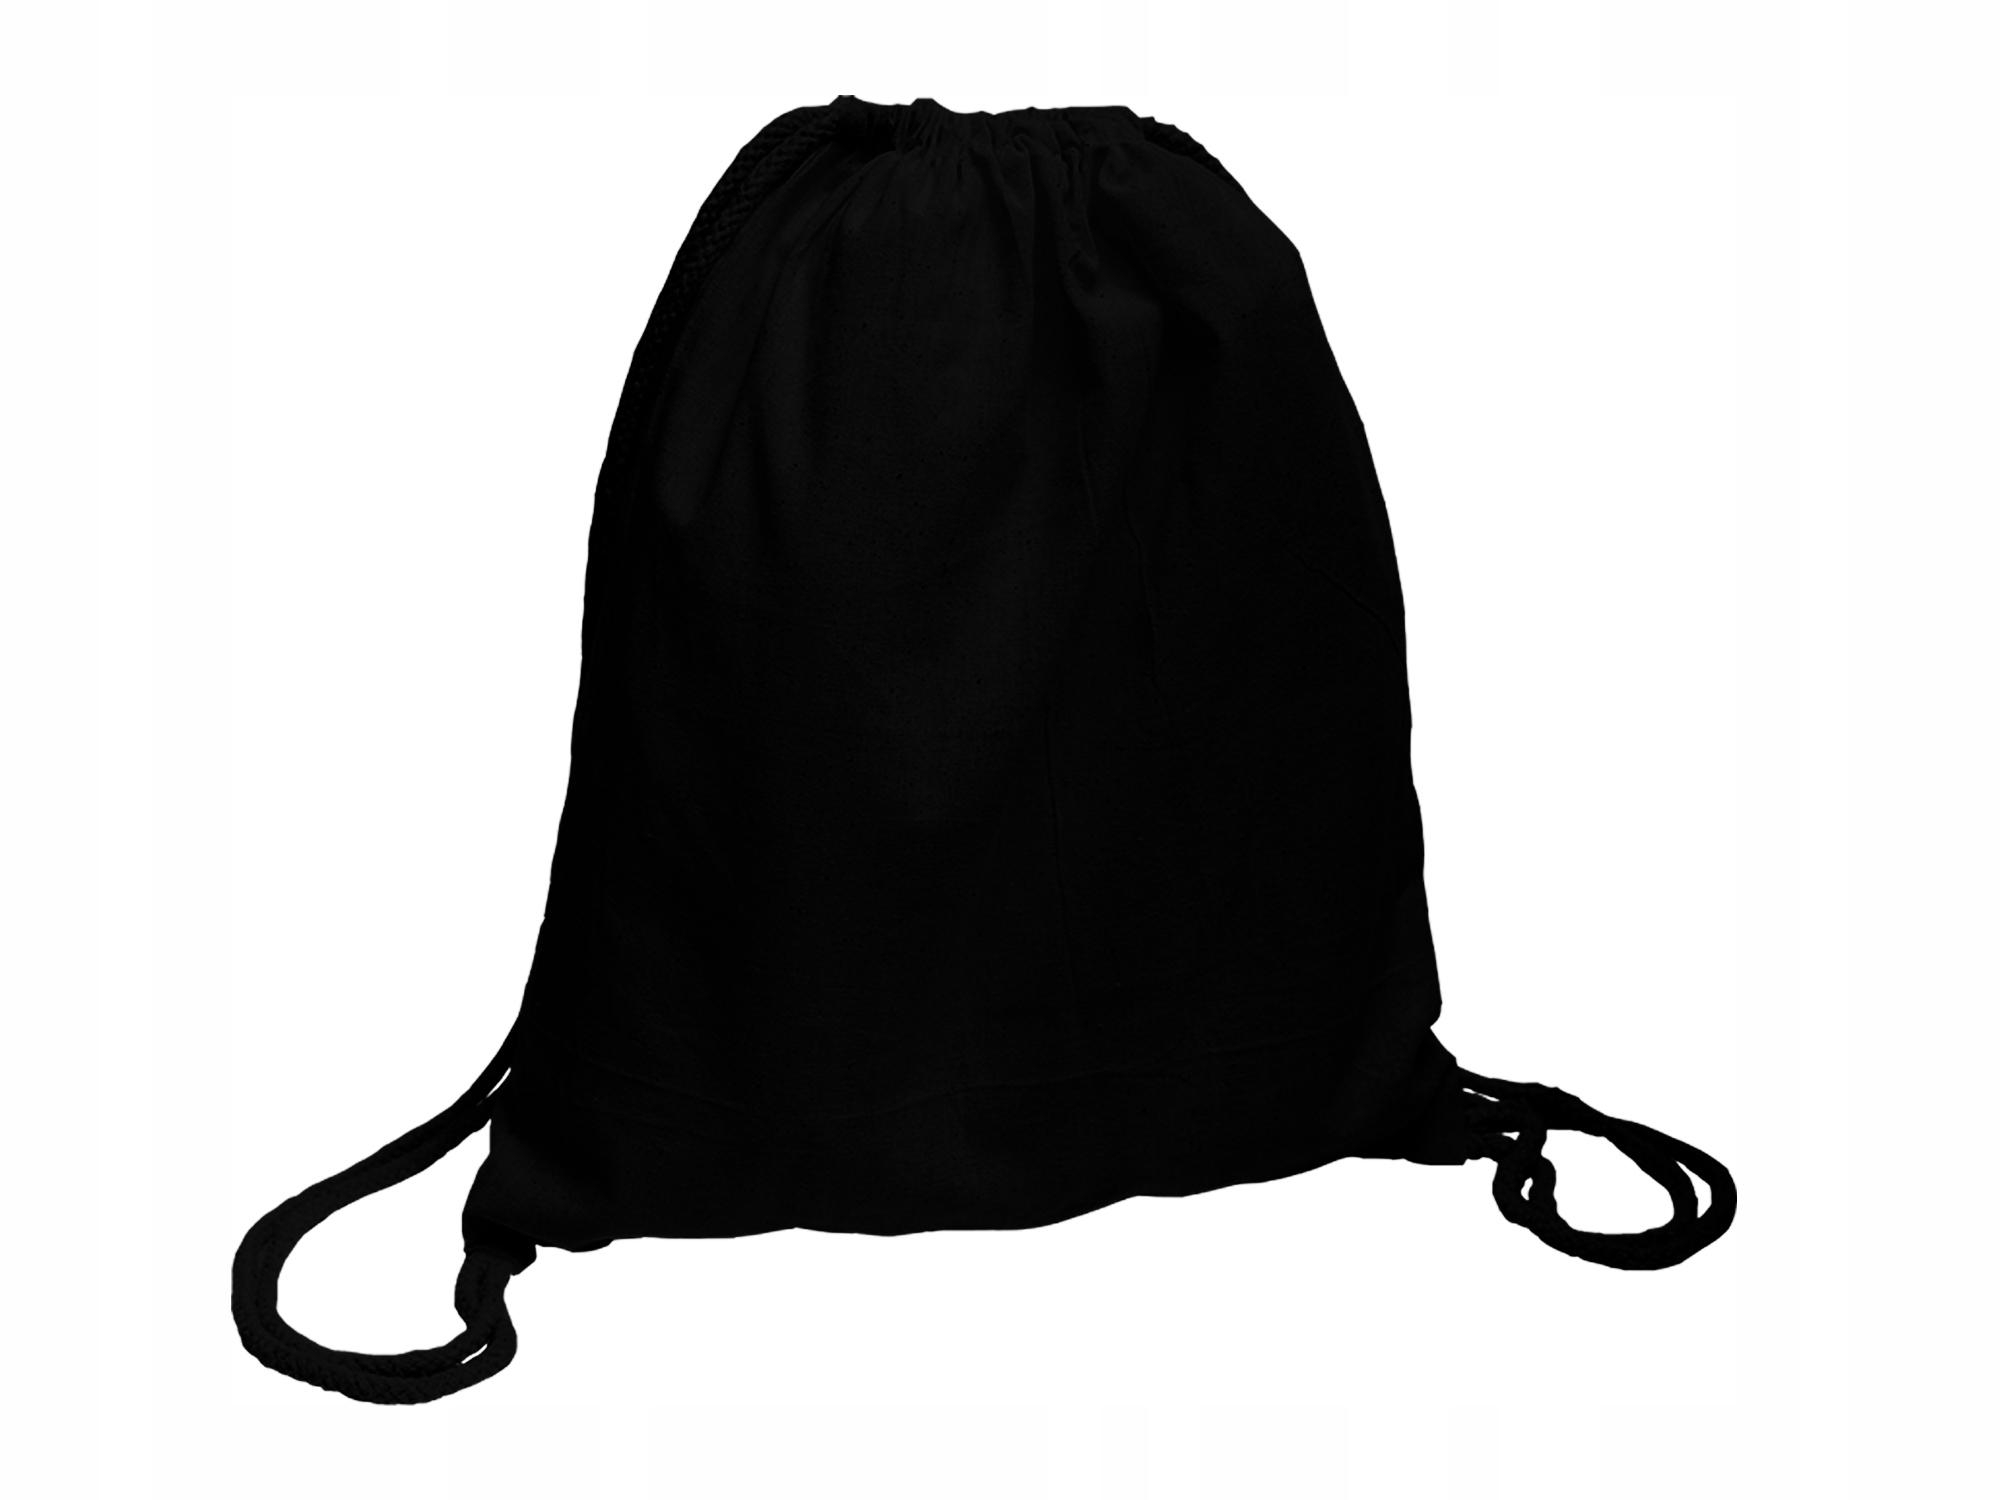 Item Backpack cotton black thick 220g bag 34x40 cm